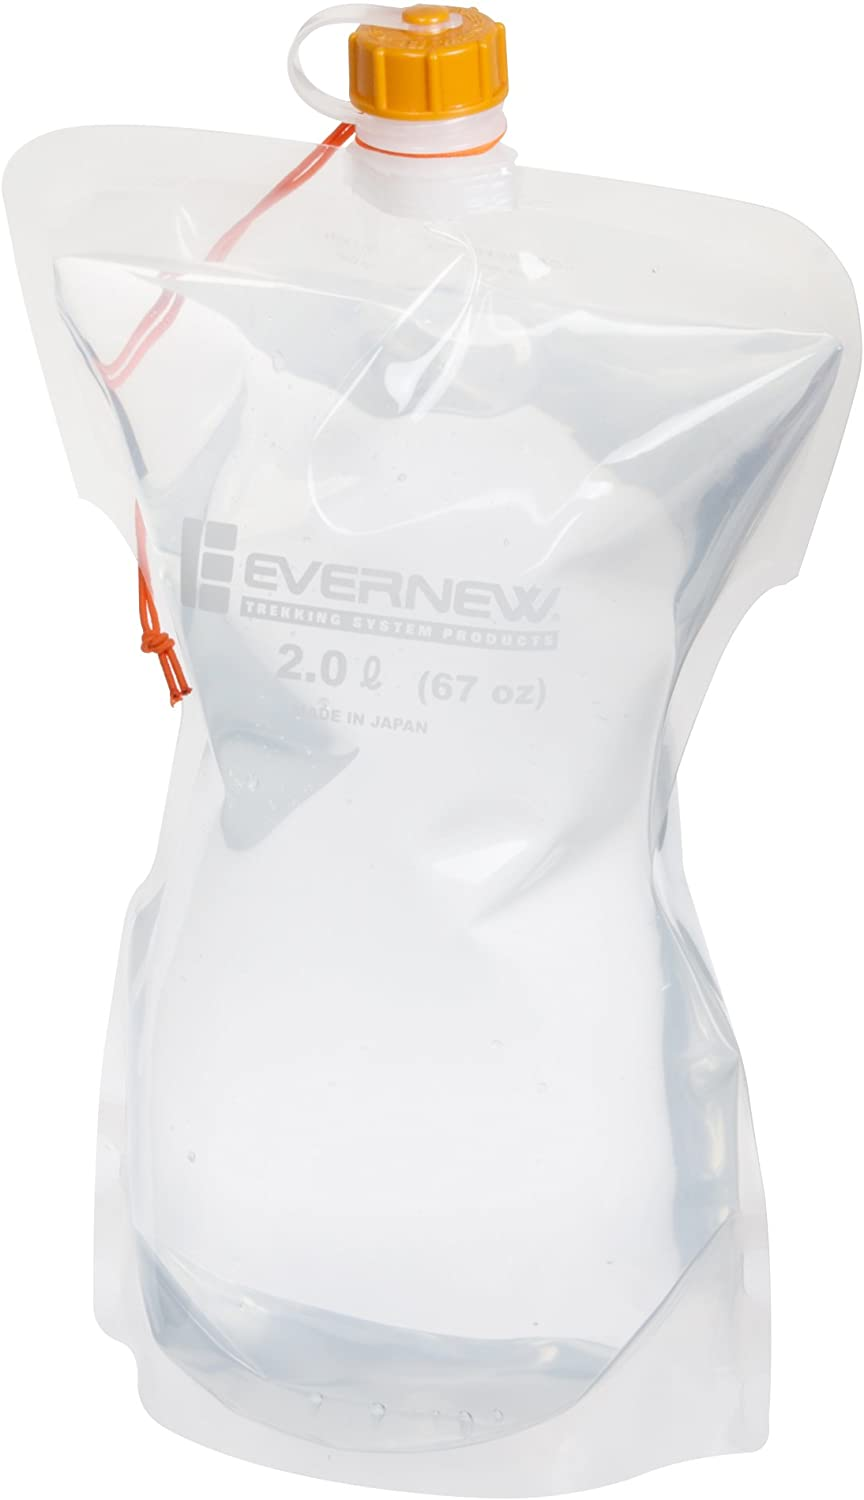 EVERNEW Water Carry System, 2000ml